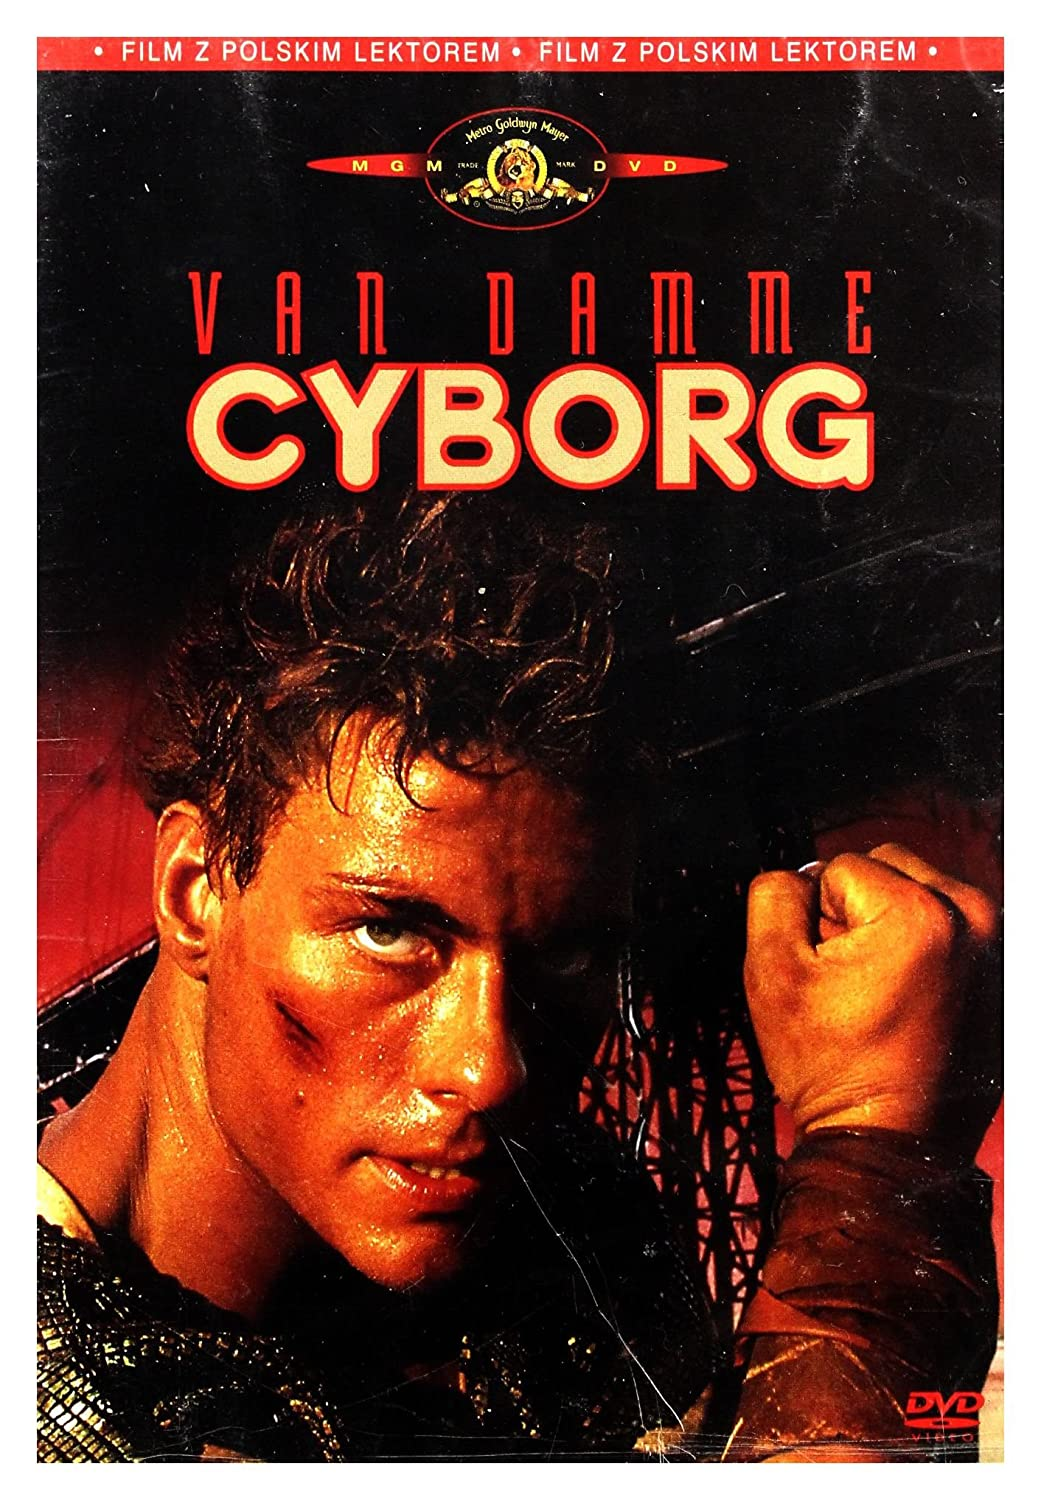 Cyborg [Region 2] (Audio español): Amazon.es: Jean-Claude ...